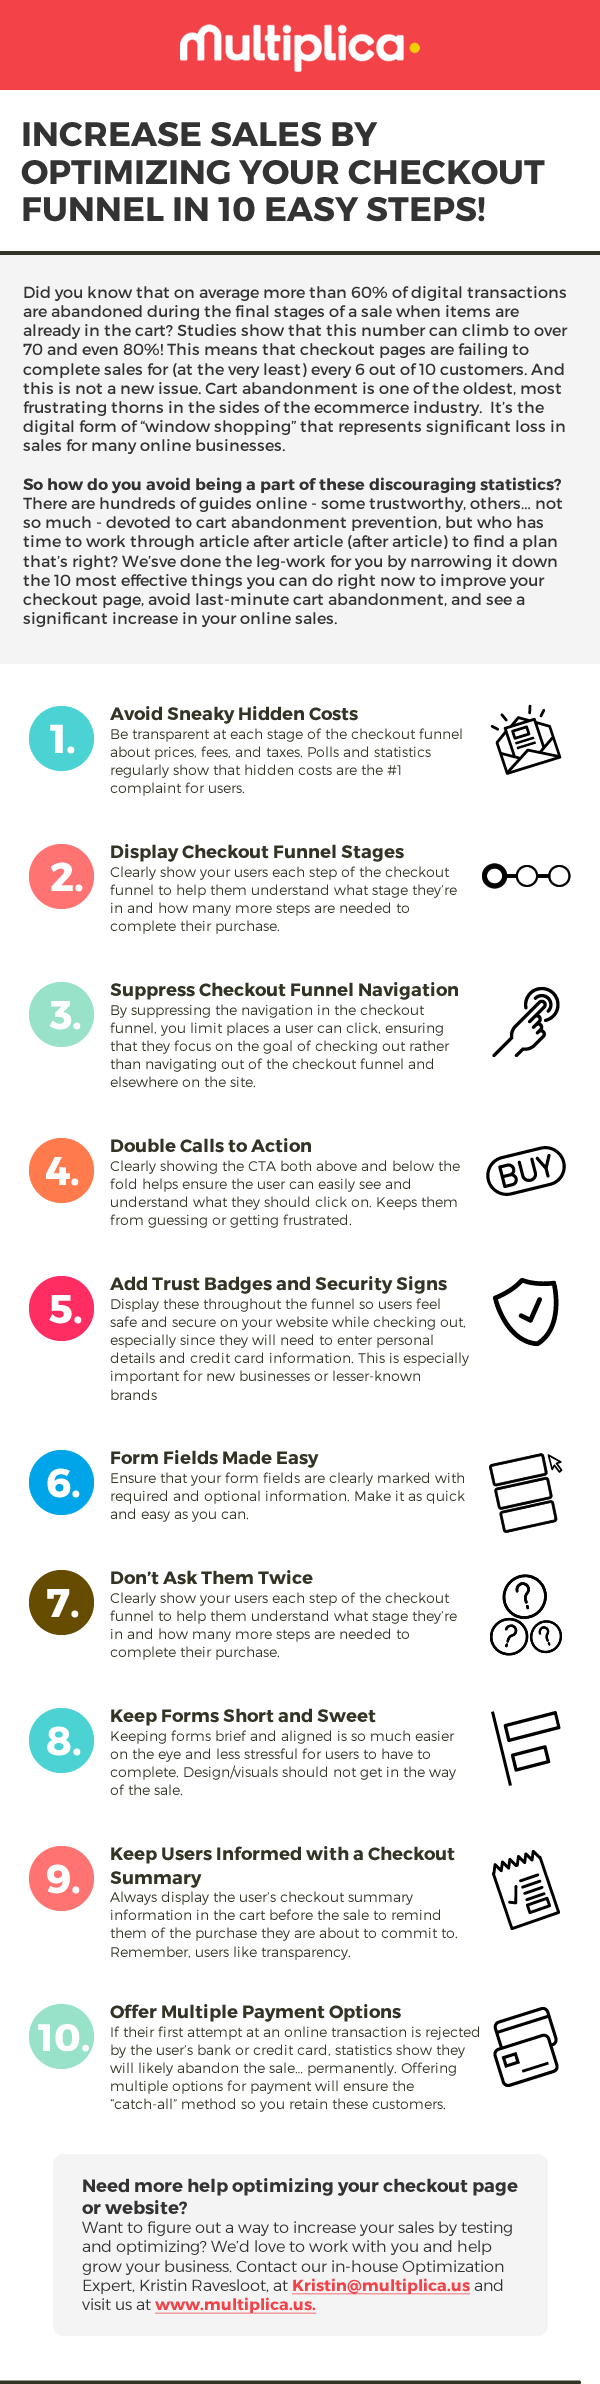 GUIDE_Increase sales by optimizing your checkout funnel.png